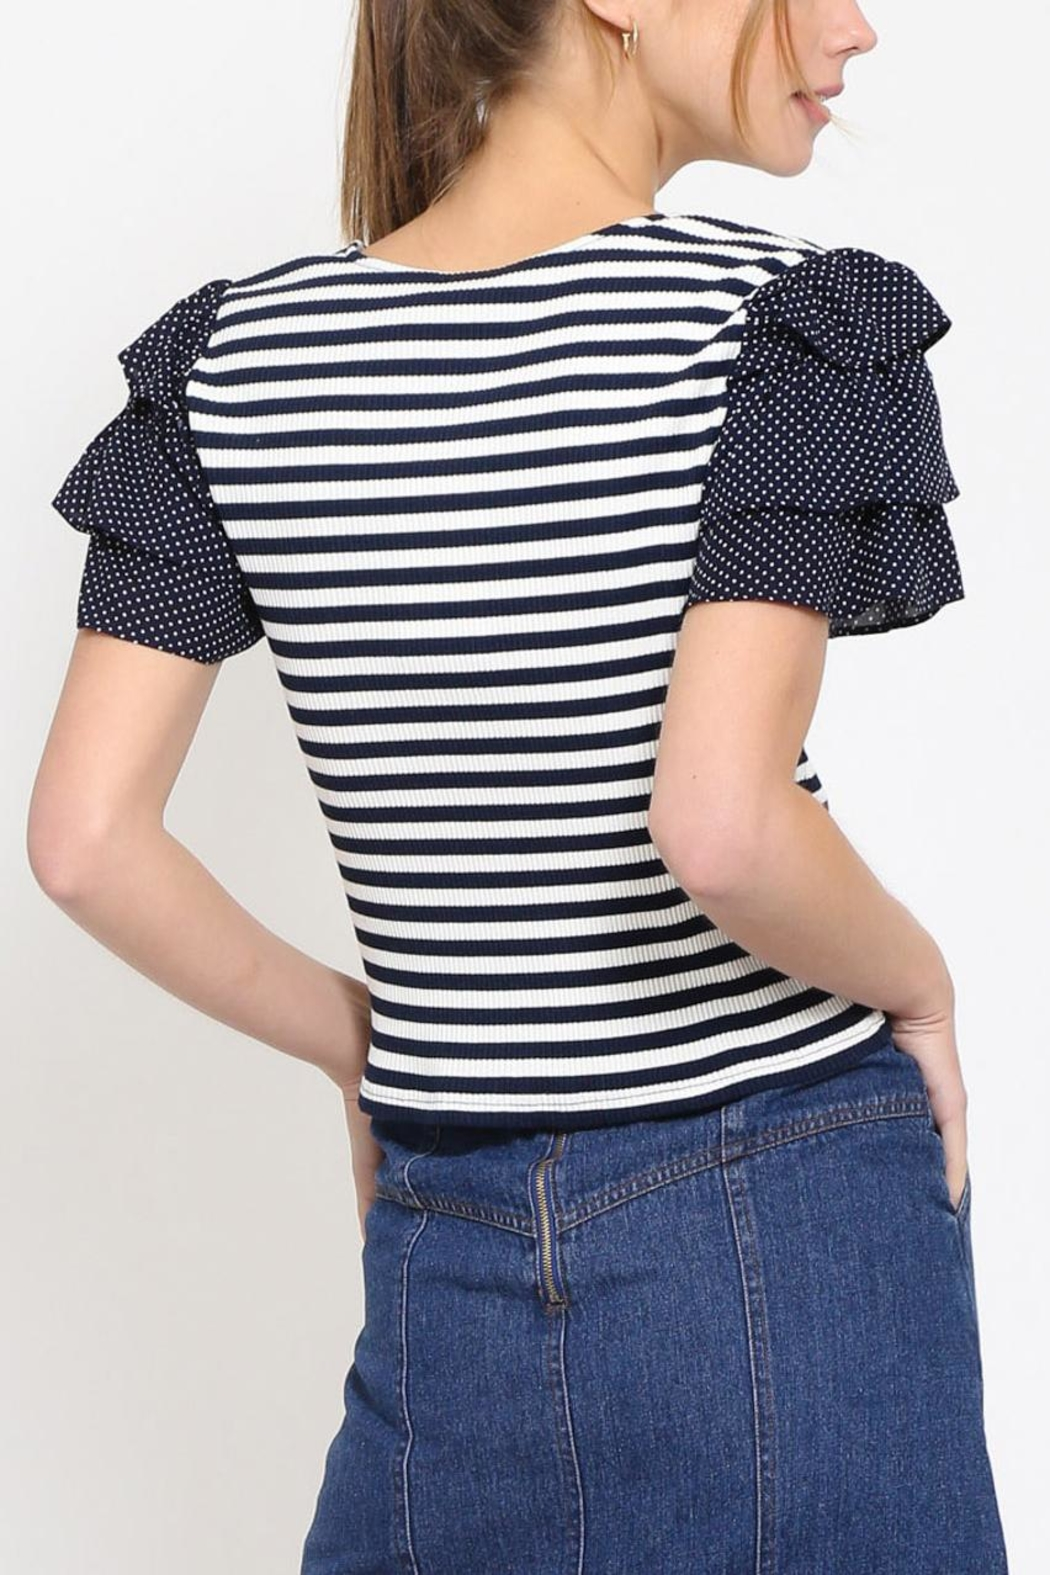 Movint Cropped Ruffle Top - Side Cropped Image